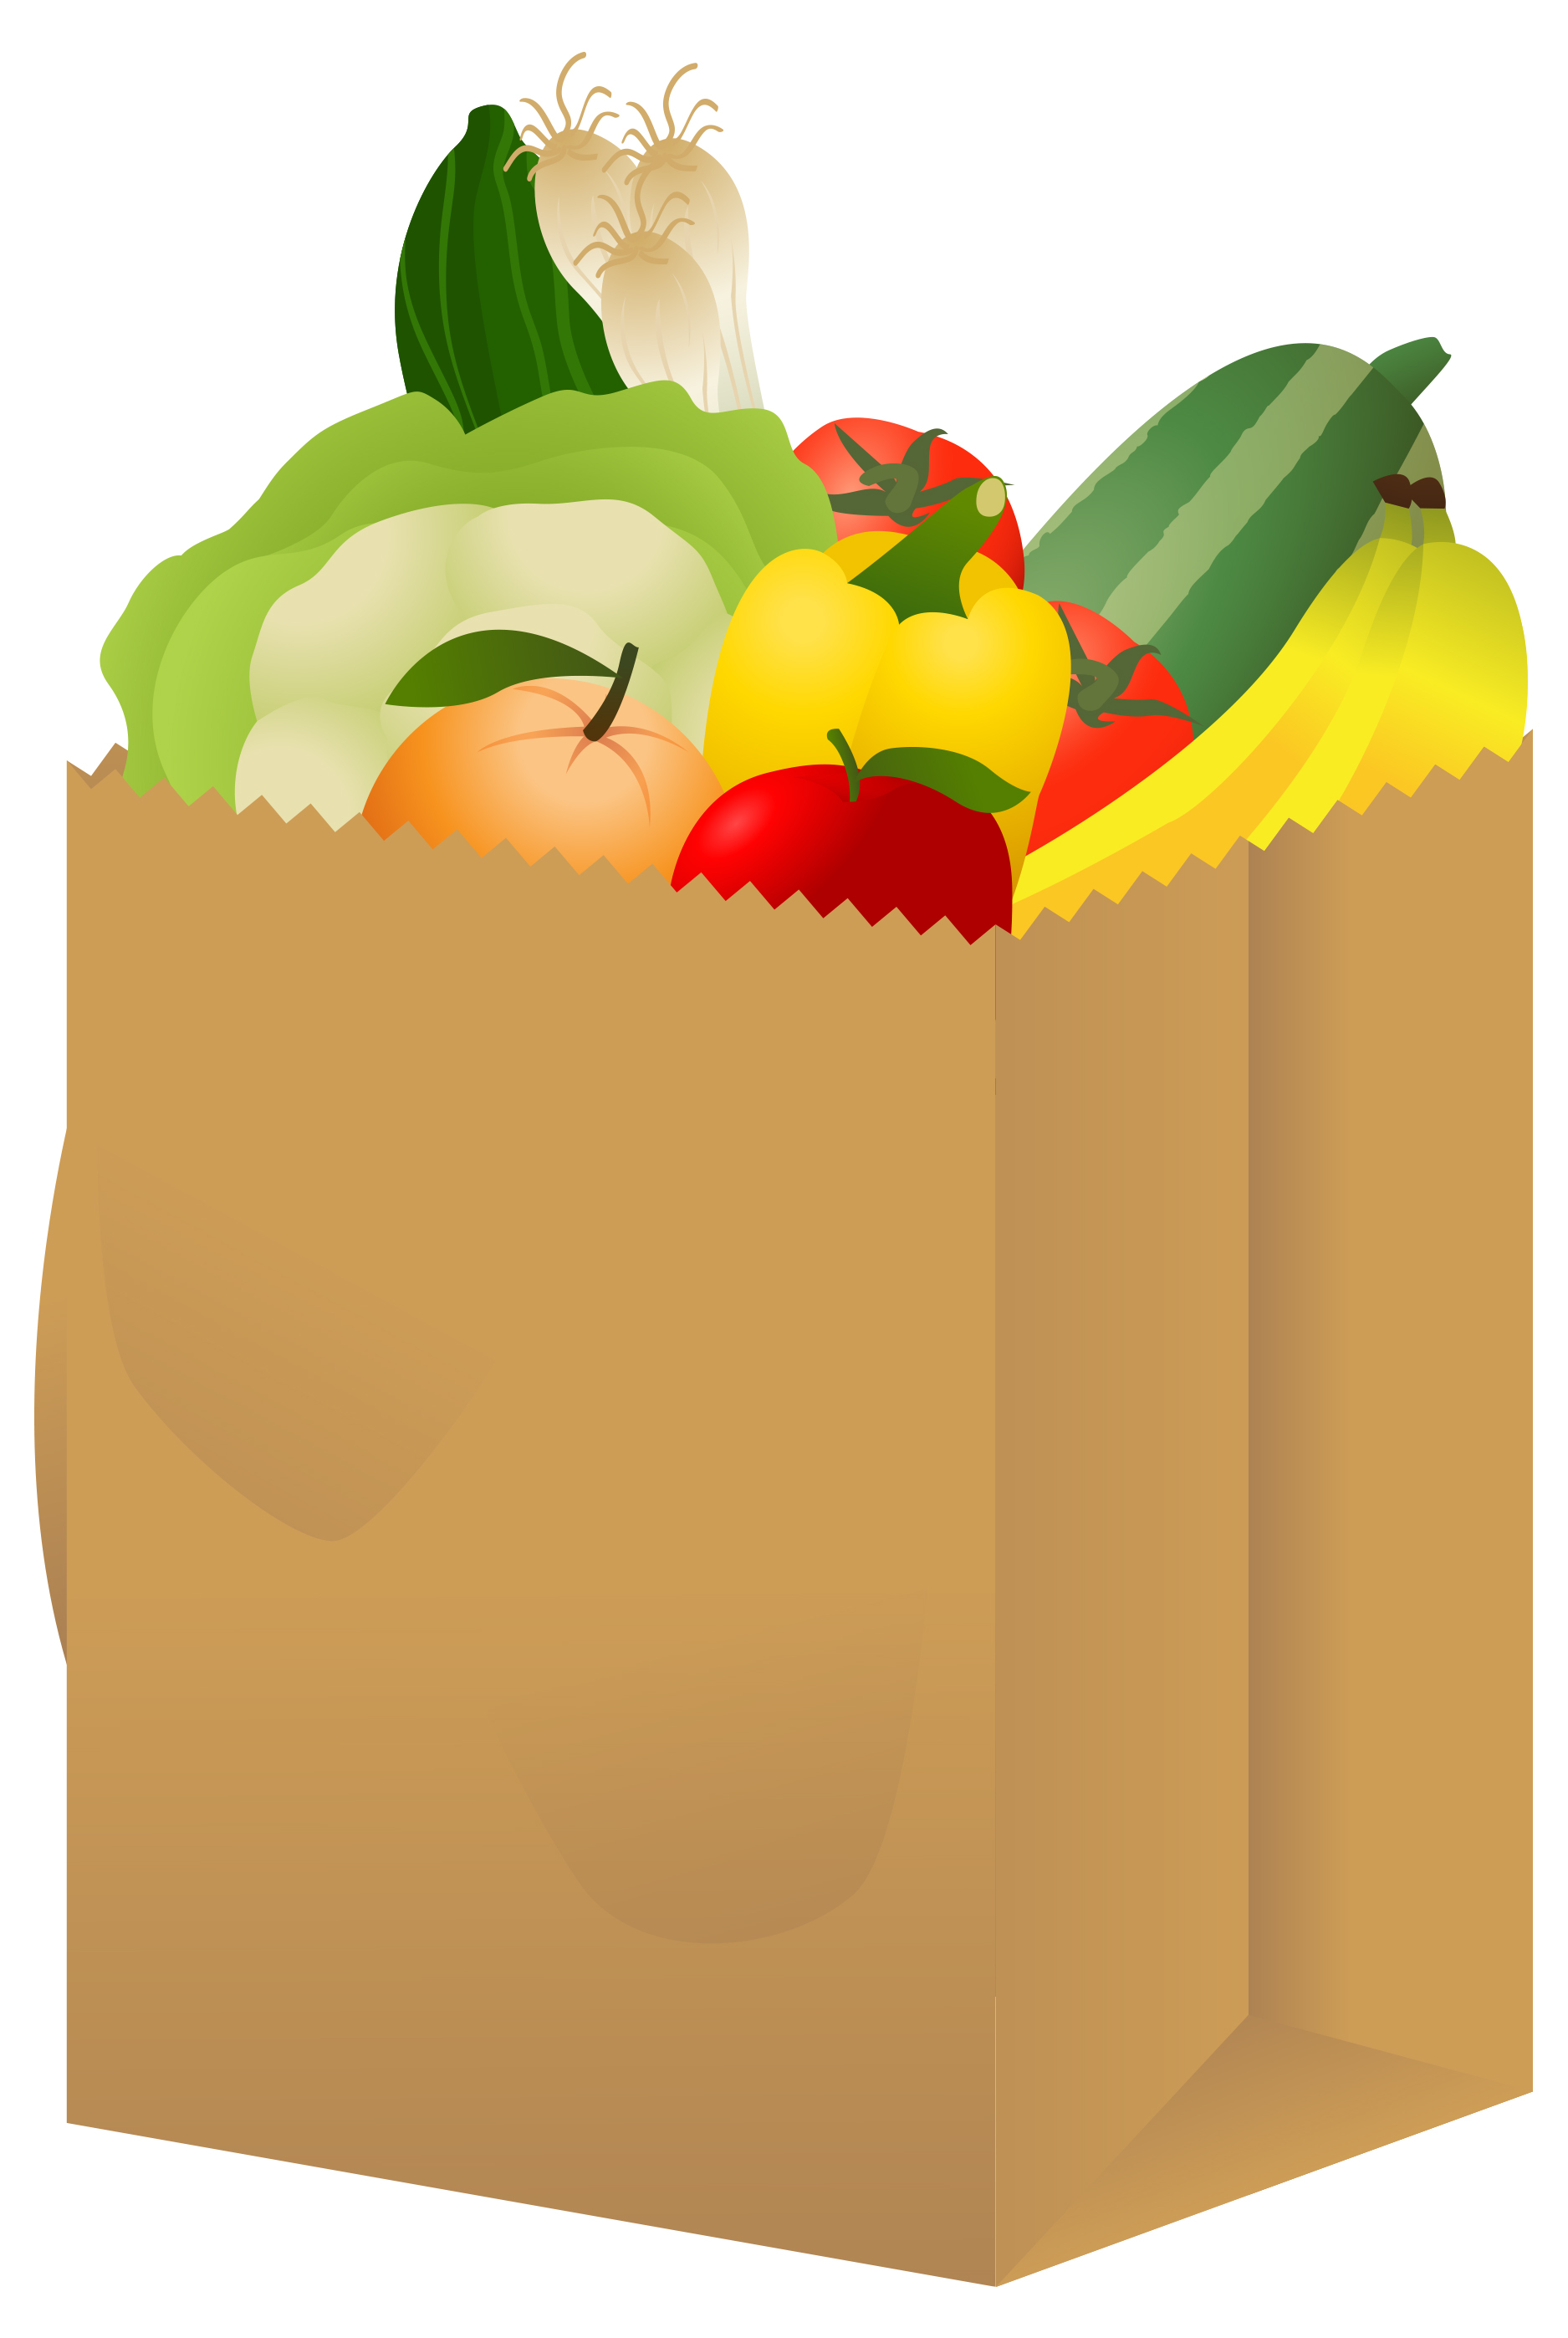 View Grocery Bag Jpg Clipart Free Nutrit-View Grocery Bag Jpg Clipart Free Nutrition And Healthy Food Clipart-17